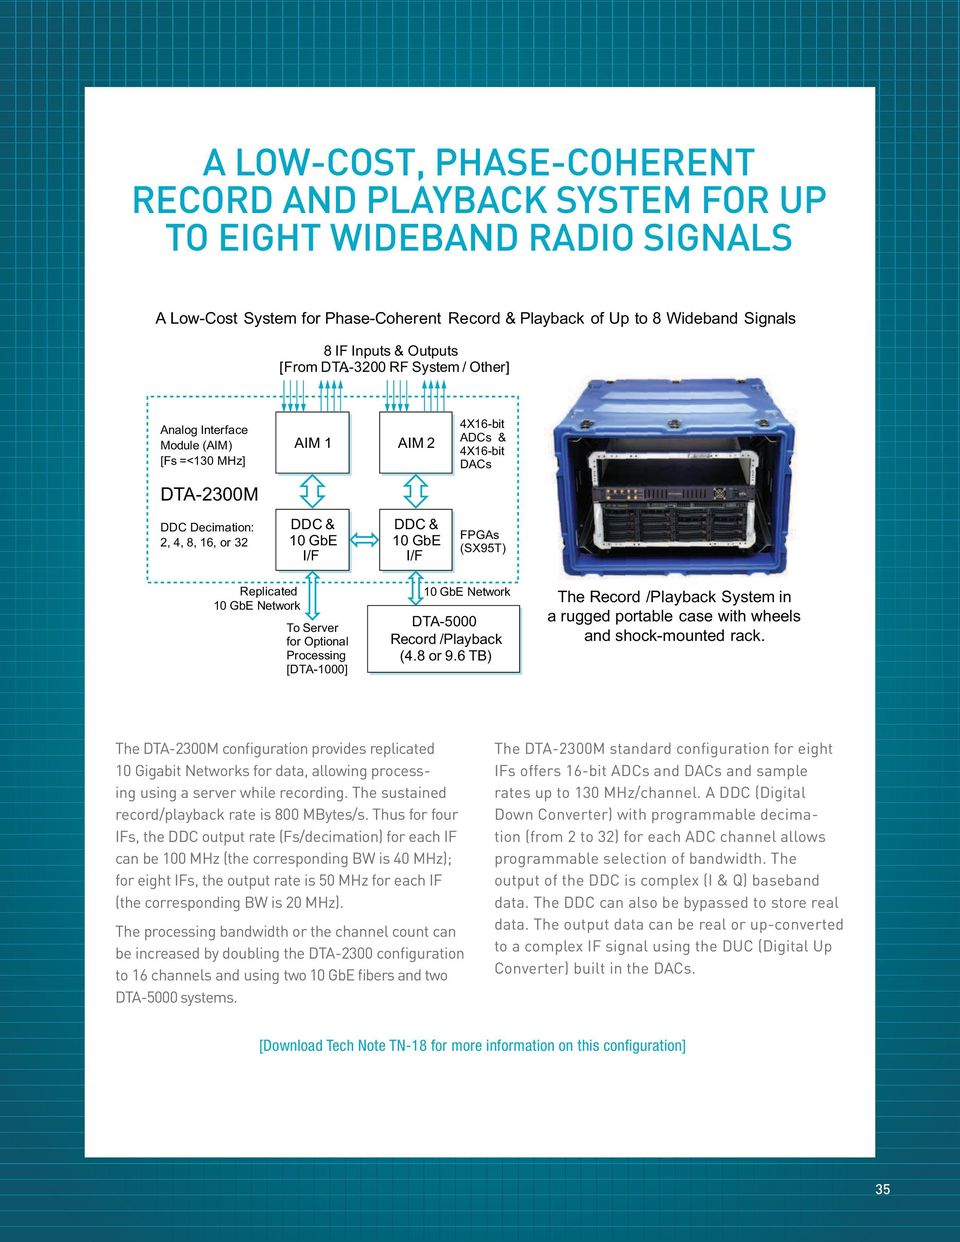 FPGAs (SX95T) Replicated Network To Server for Optional Processing [DTA-1000] Network Record /Playback (4.8 or 9.